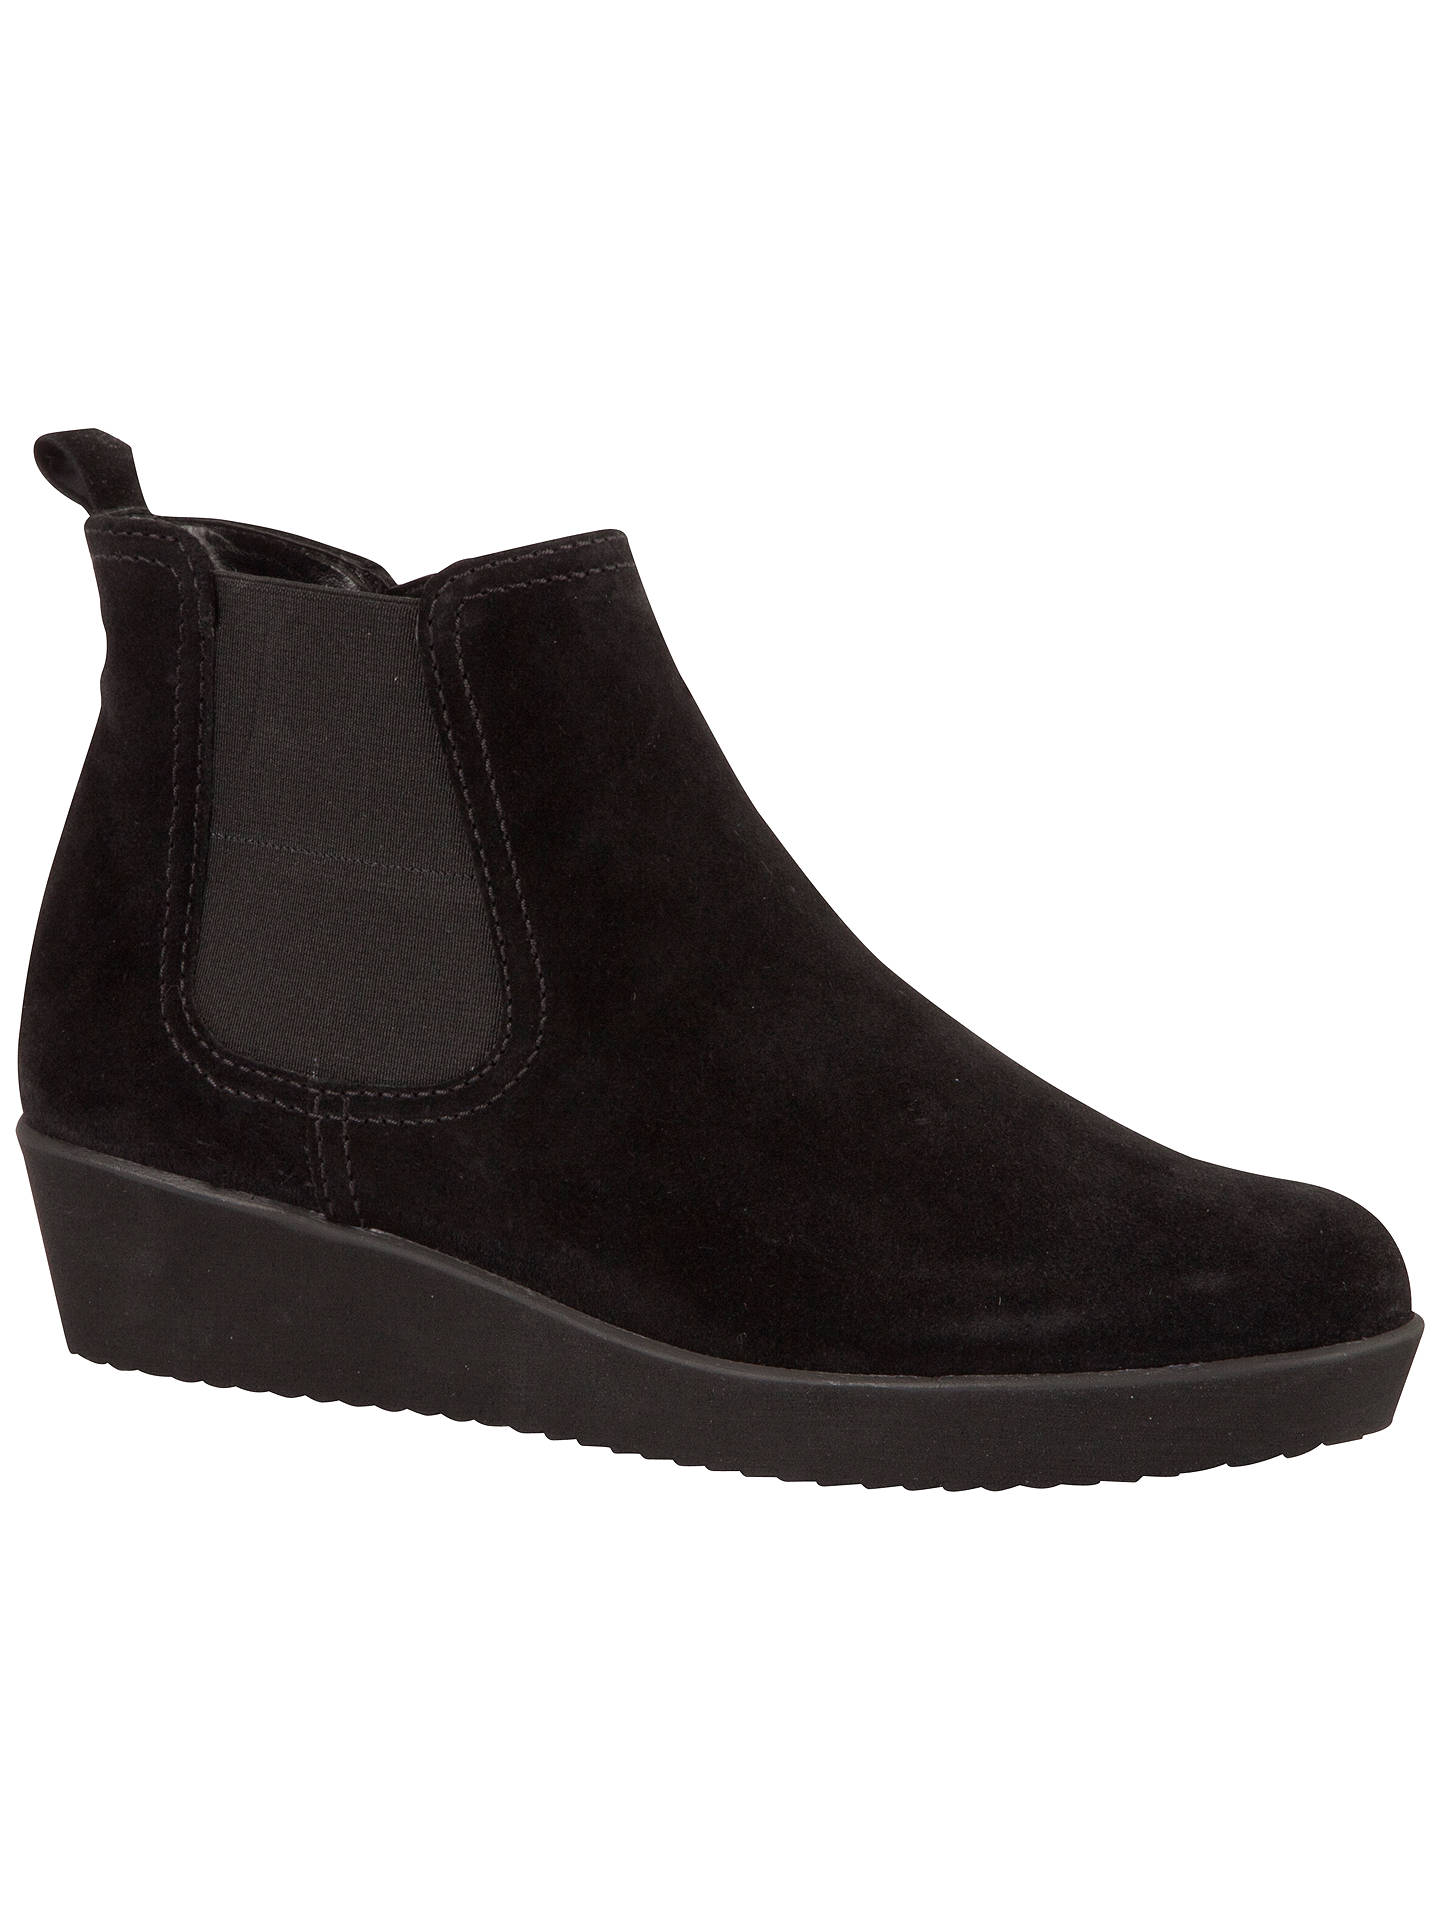 8126a037281 Gabor Ghost Wide Suede Ankle Boots, Black at John Lewis & Partners